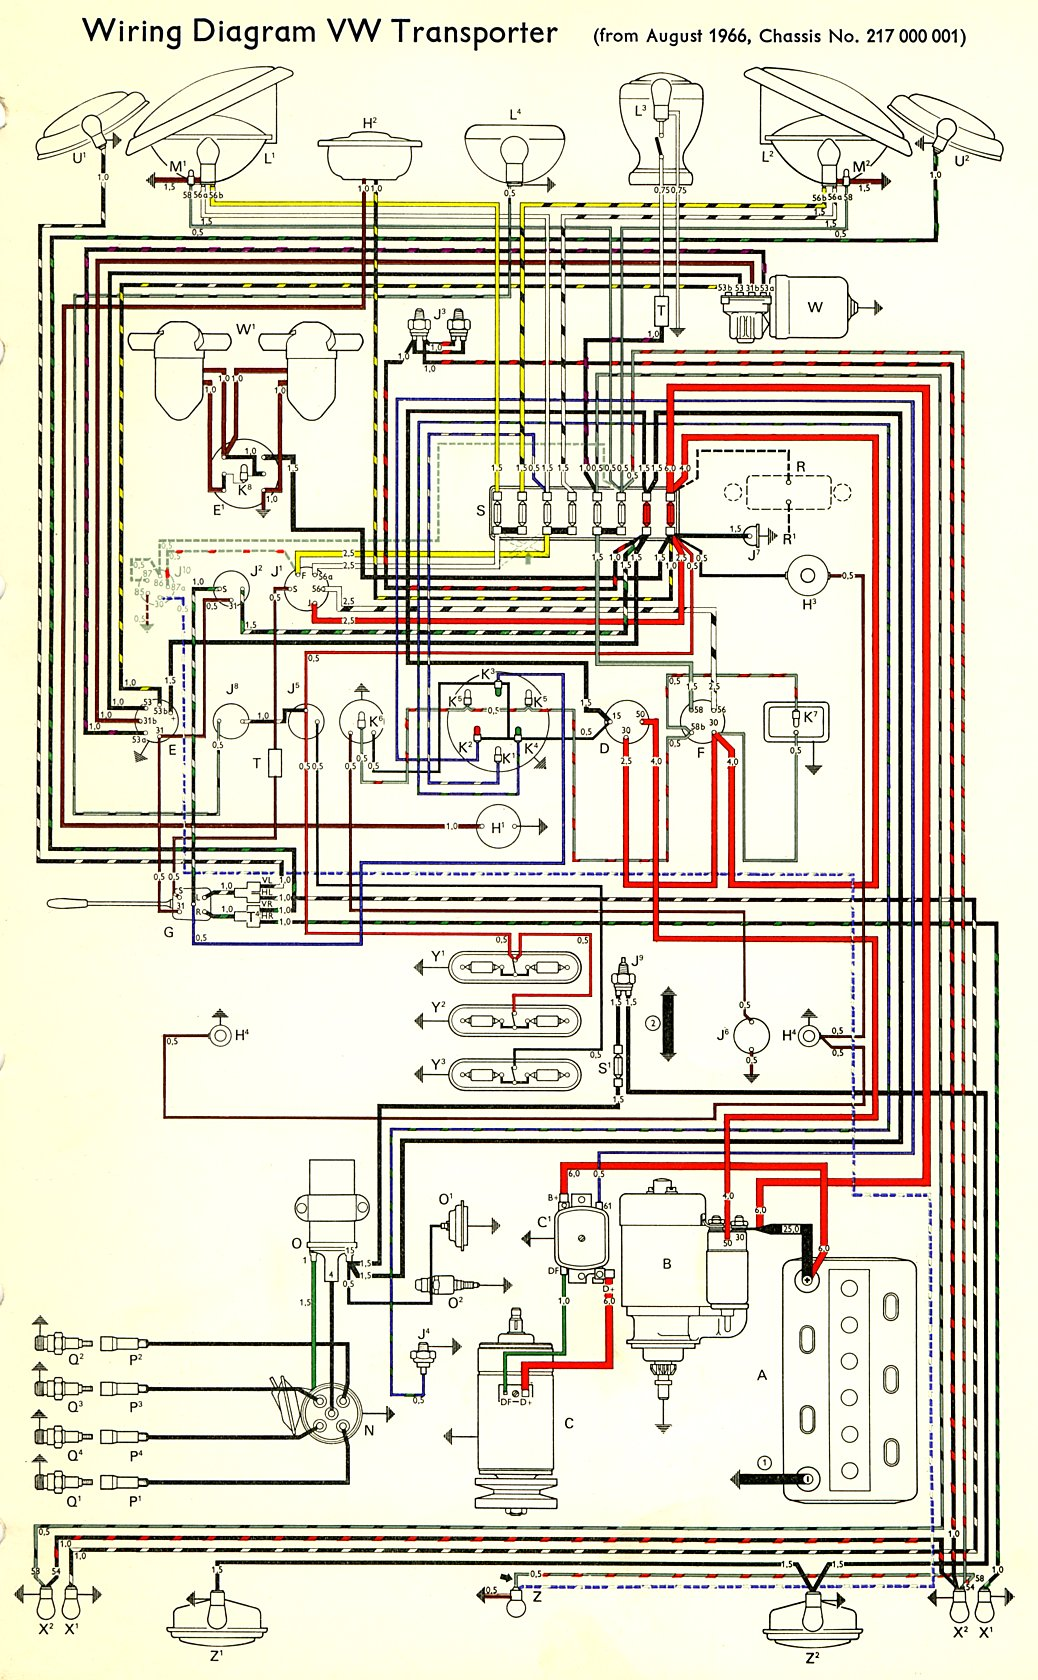 bus_67 1967 bus wiring diagram thegoldenbug com bus diagram at aneh.co